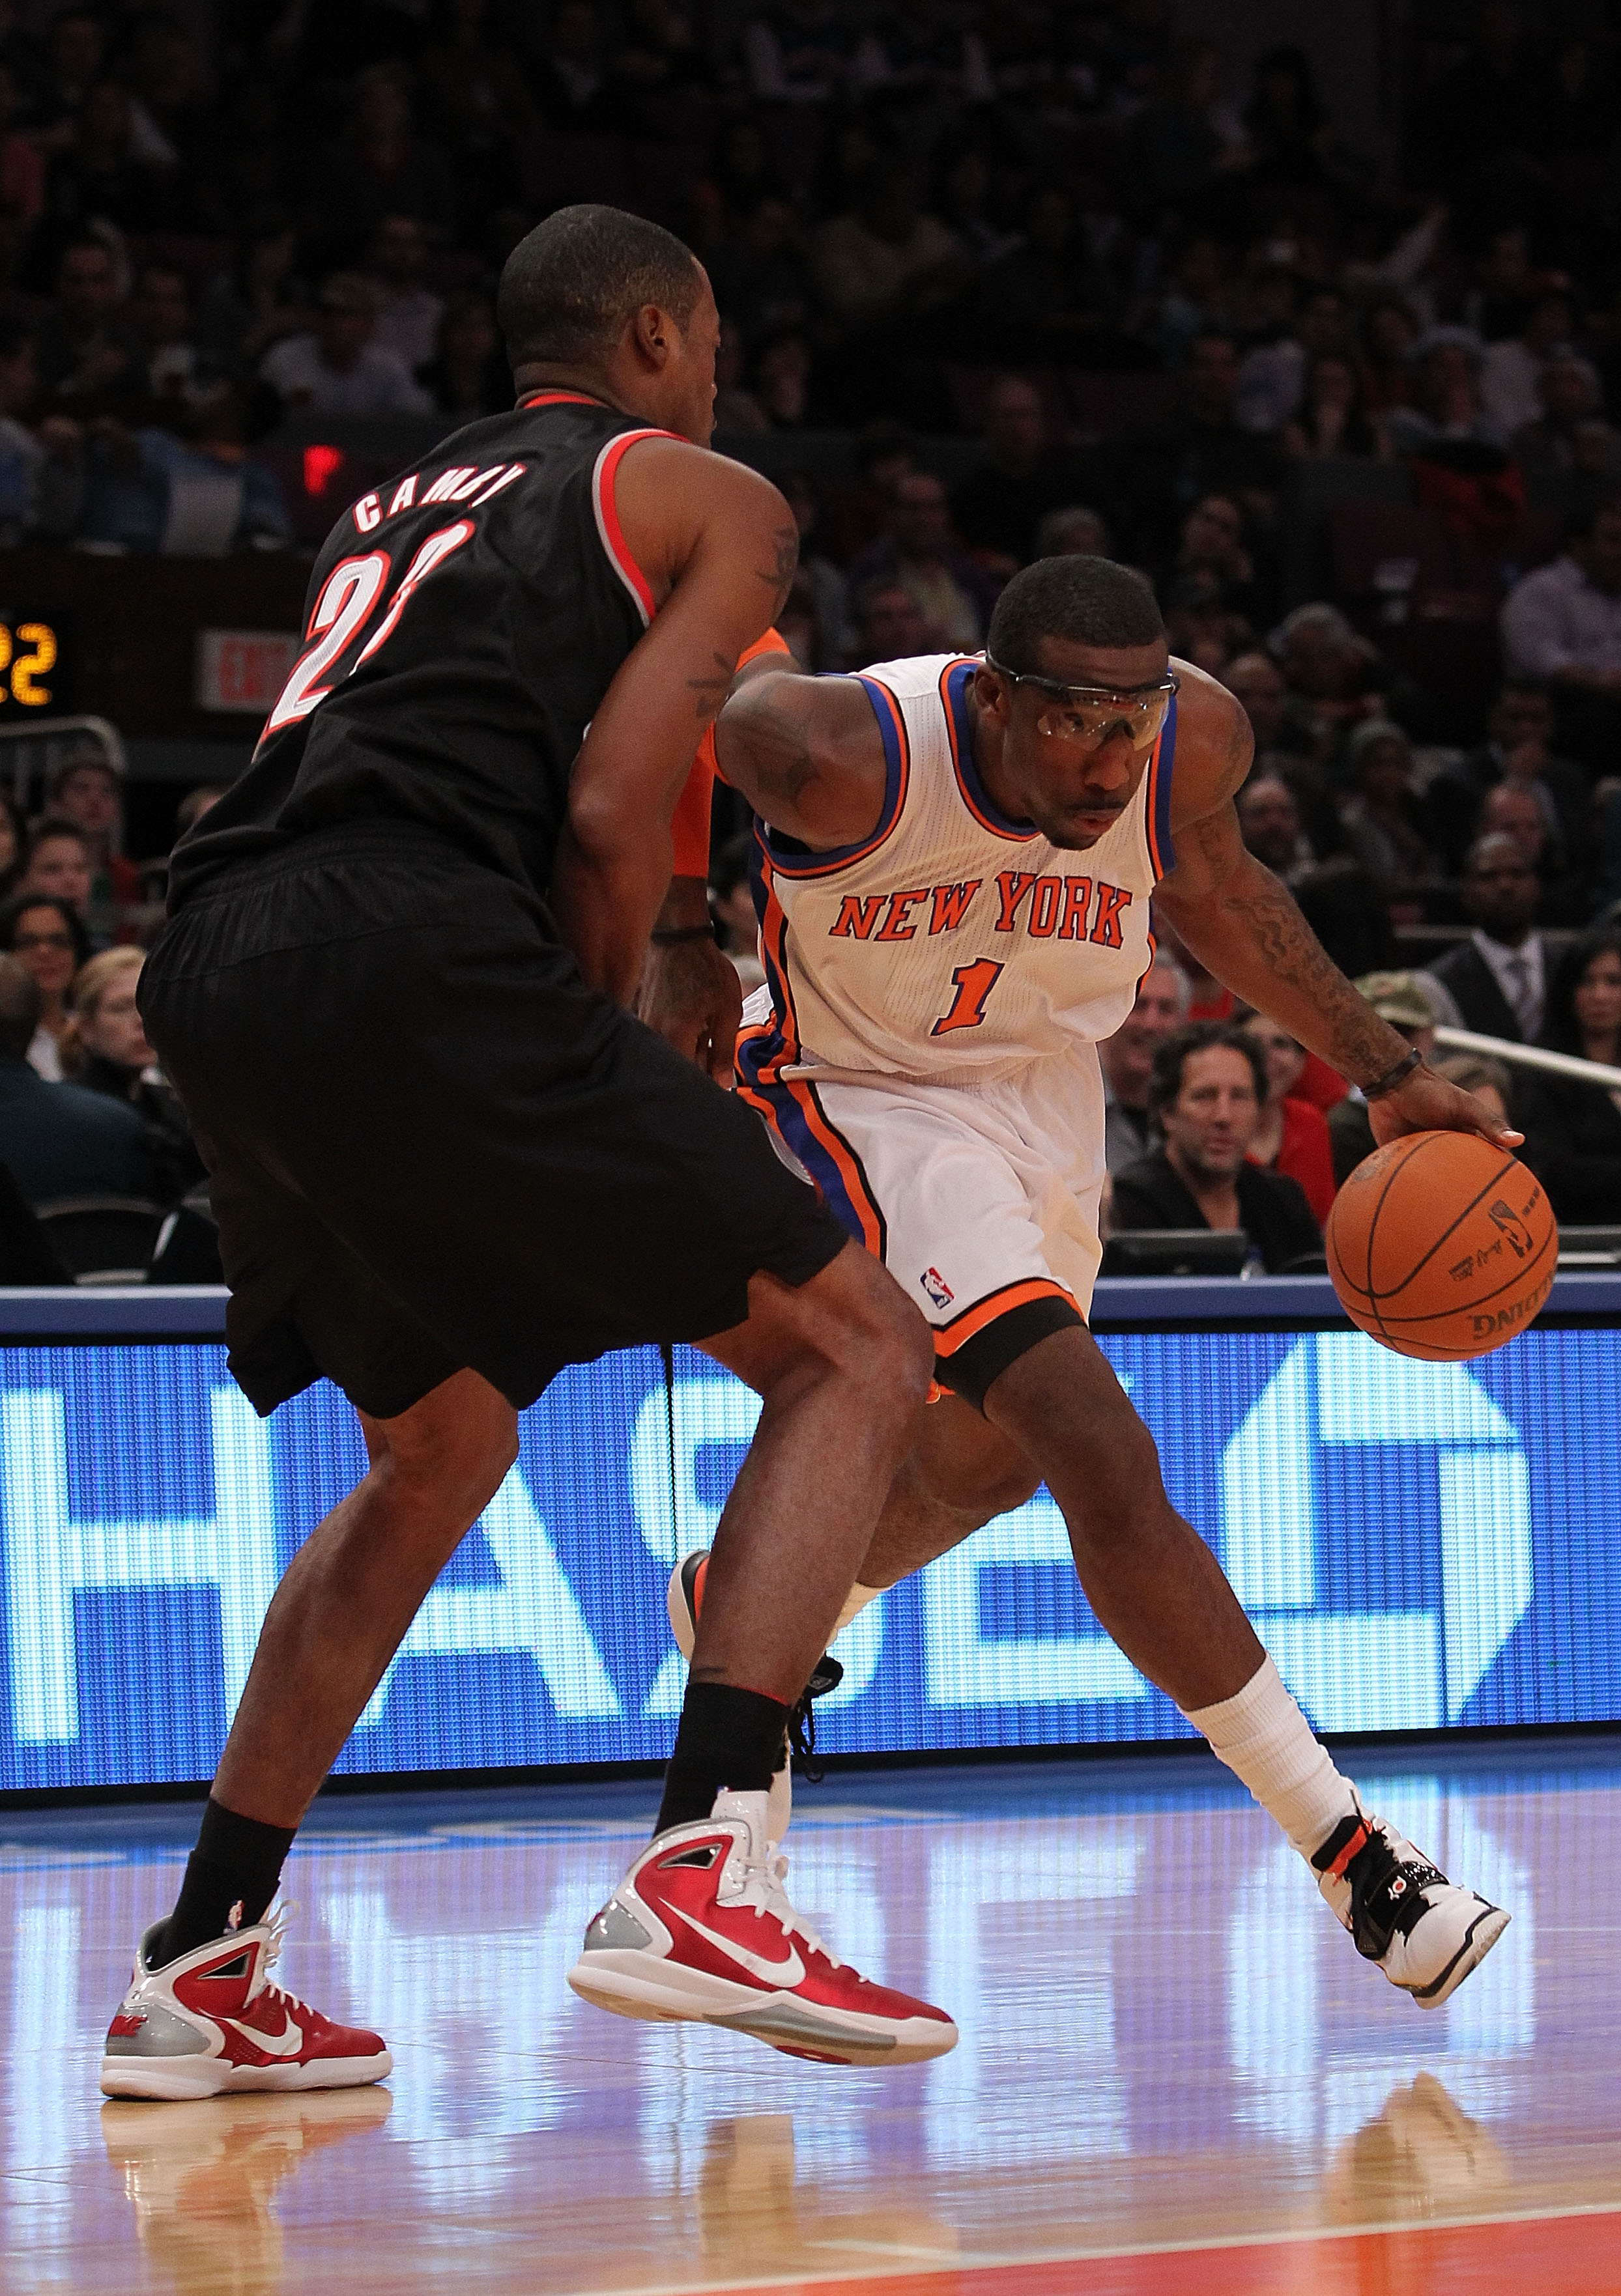 NEW YORK - OCTOBER 30:  Amar'e Stoudemire #1 of the New York Knicks drives against Marcus Camby #23 of the Portland Trail Blazers at Madison Square Garden on October 30, 2010 in New York City. NOTE TO USER: User expressly acknowledges and agrees that, by